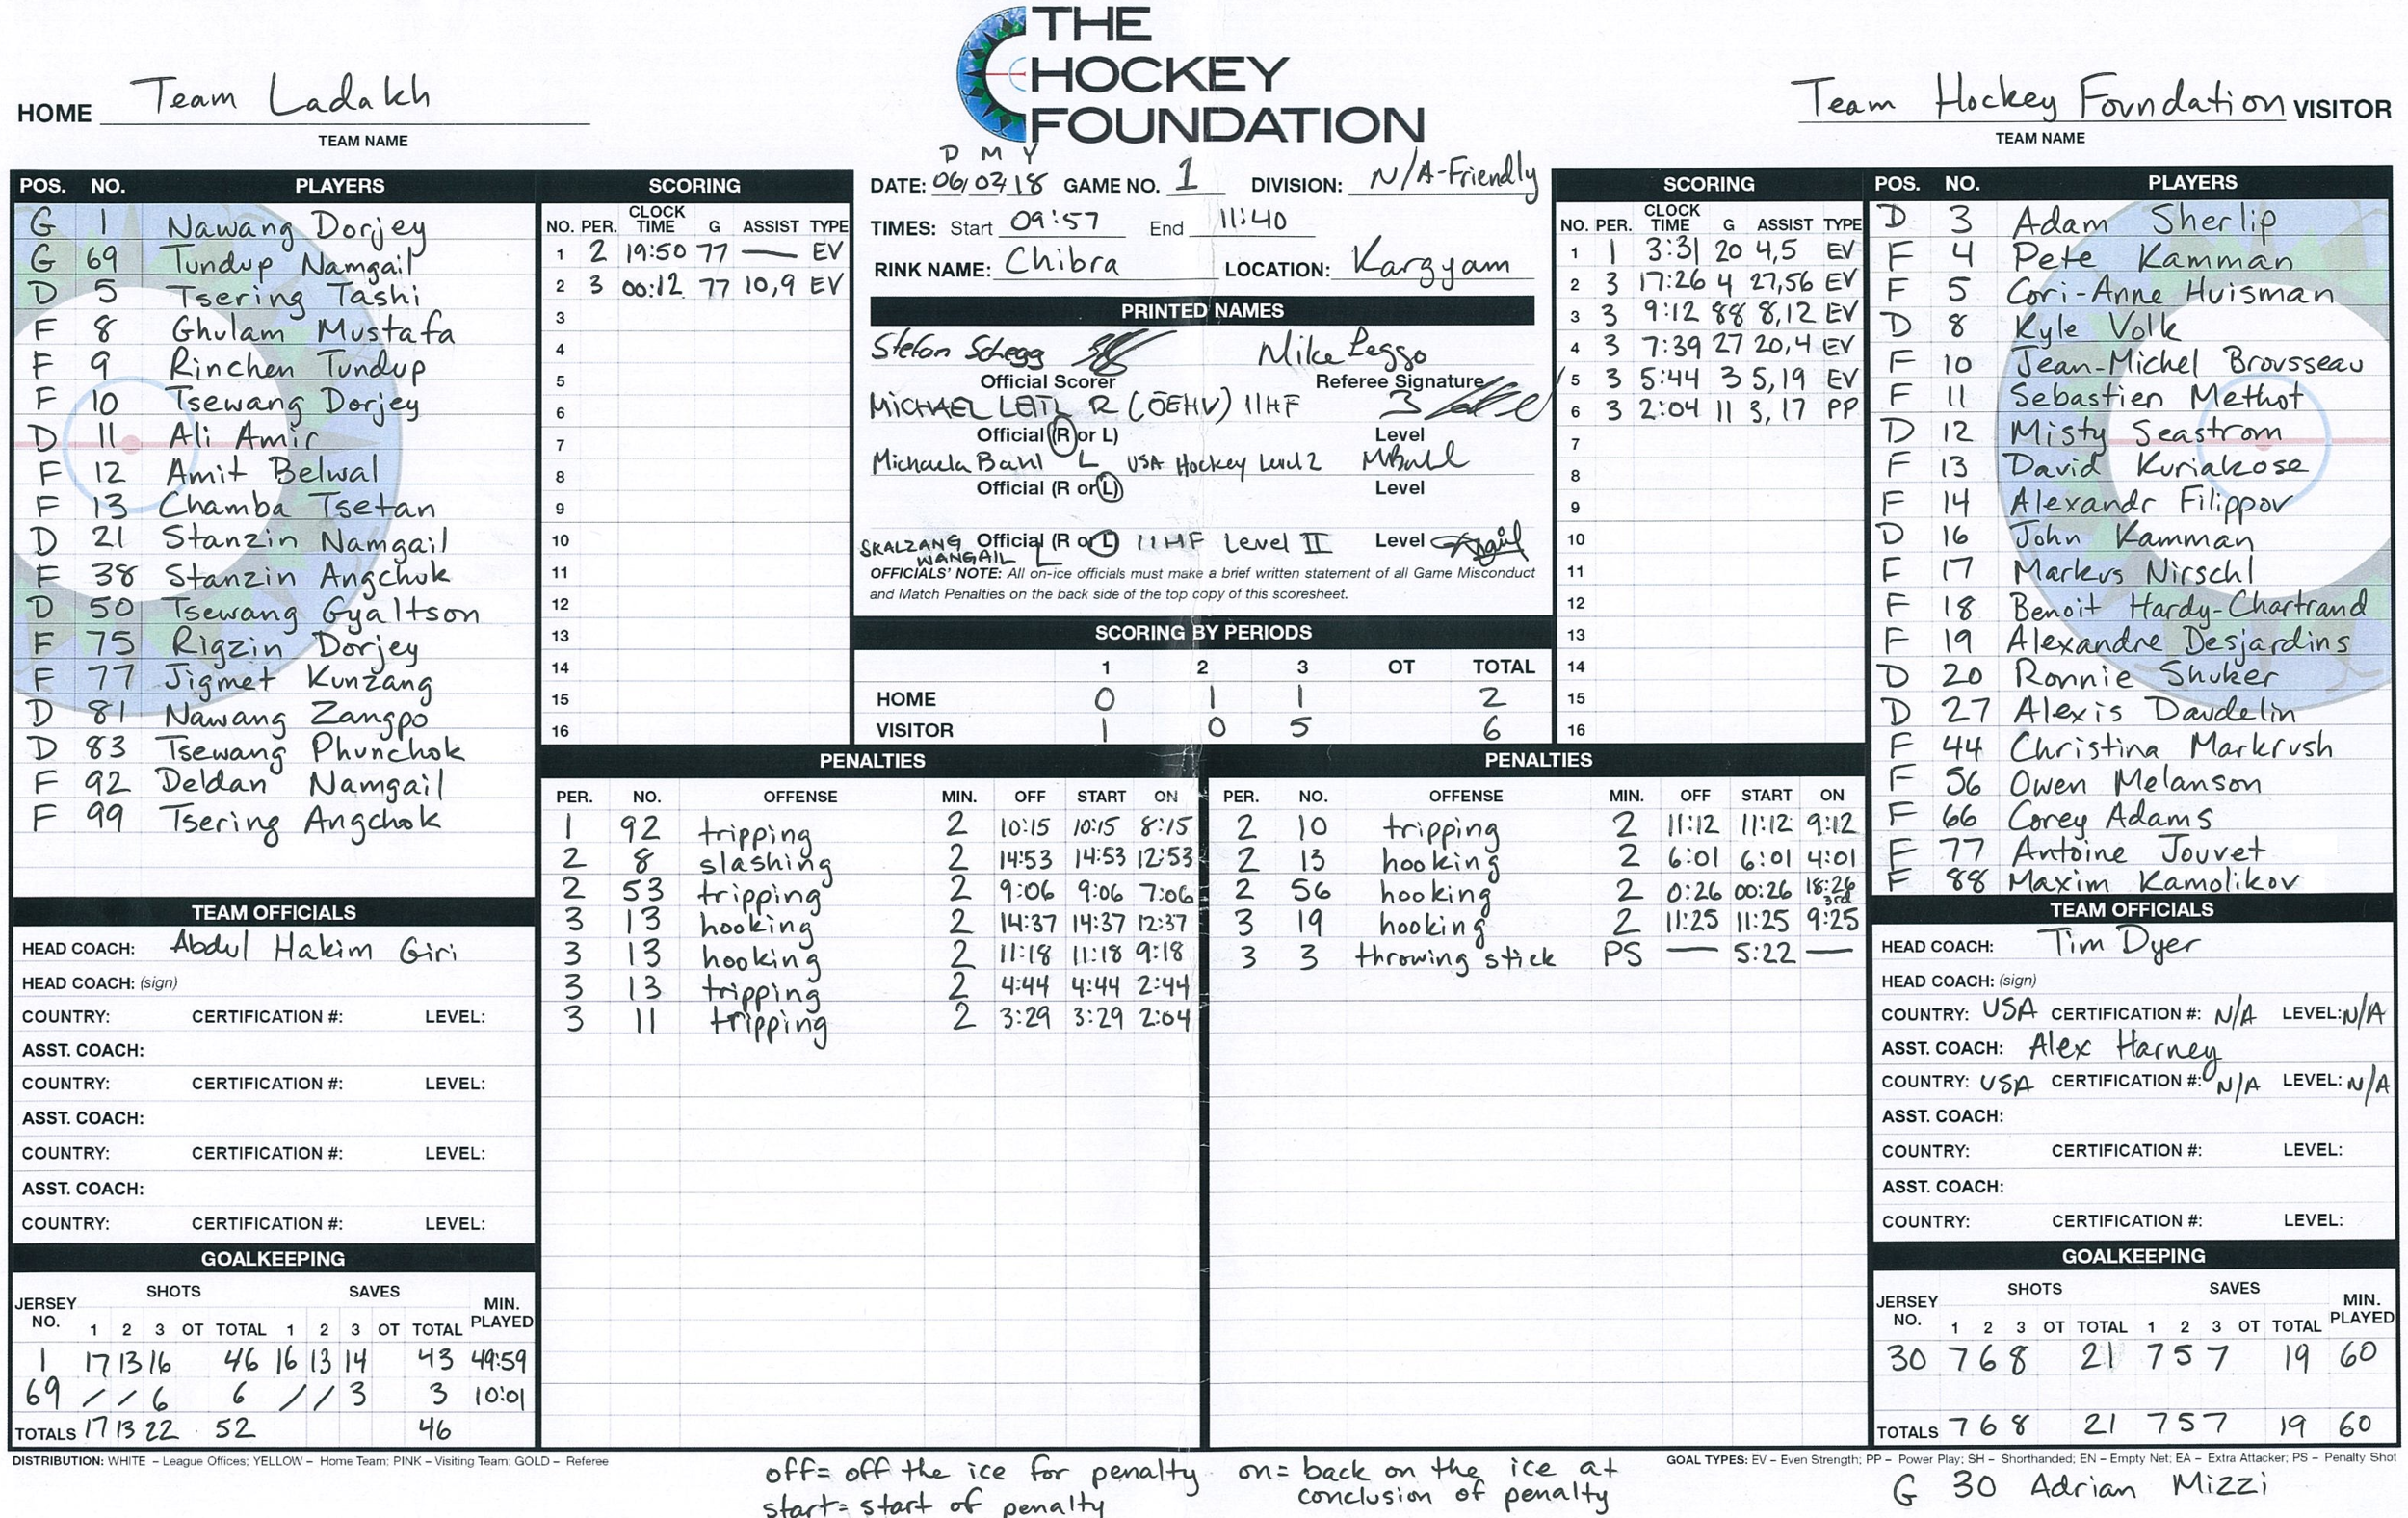 Official score-sheet from the record-breaking game between Team Hockey Foundation and Team Ladakh on February 6, 2018.